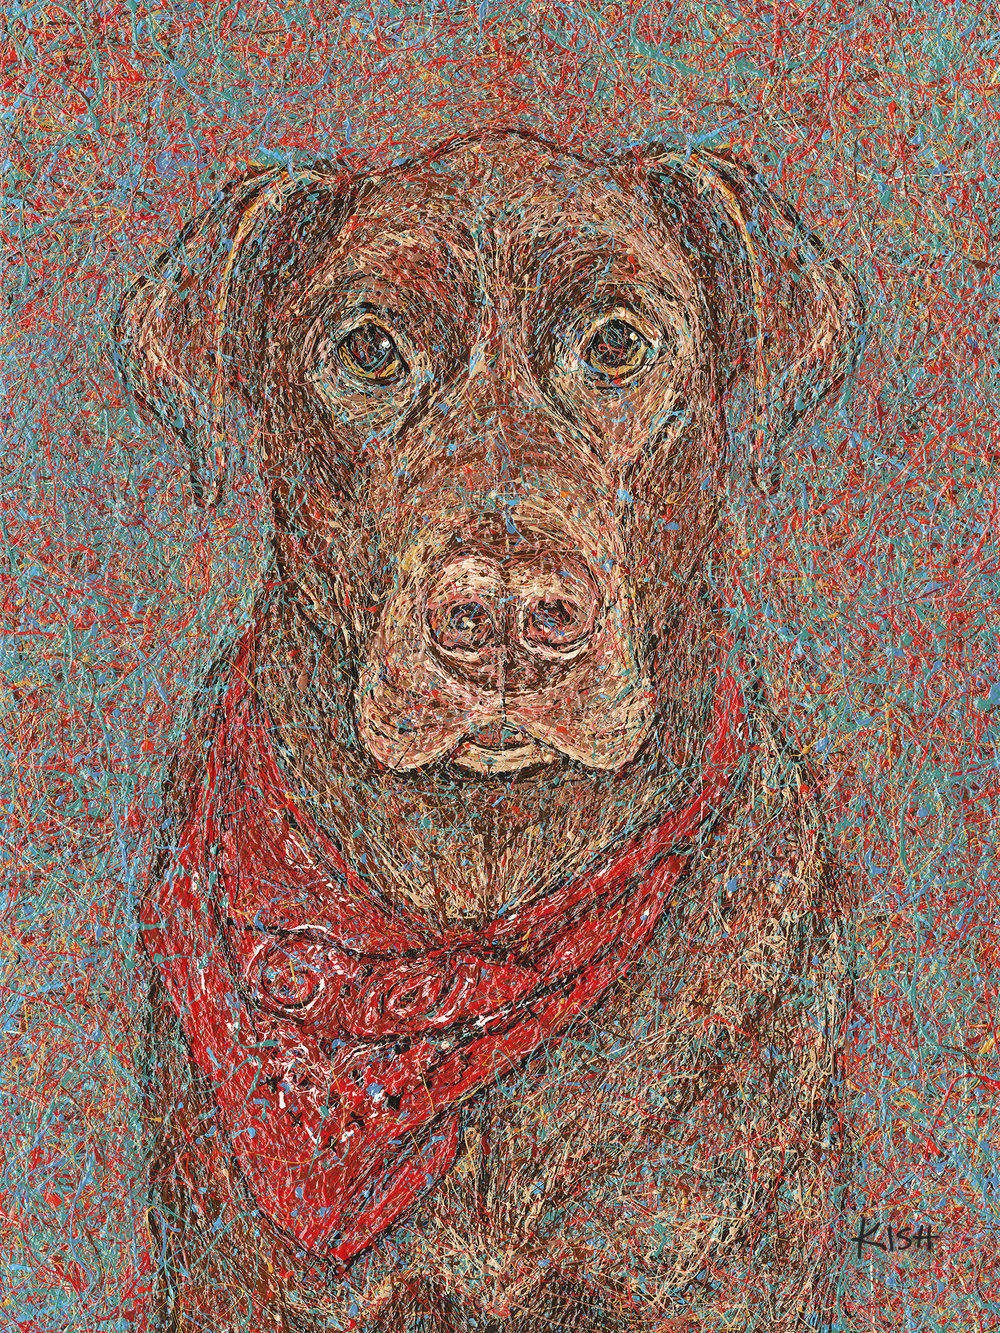 CHOCOLATE LAB  - ORIGINAL ART 30 x 40—SOLDArt Print (giclee)                      16 x 20 ................$125                                               18 x 24 .................$150Canvas Print (giclee)               16 x 20 ................$325                                               30 x 40 ...............$750